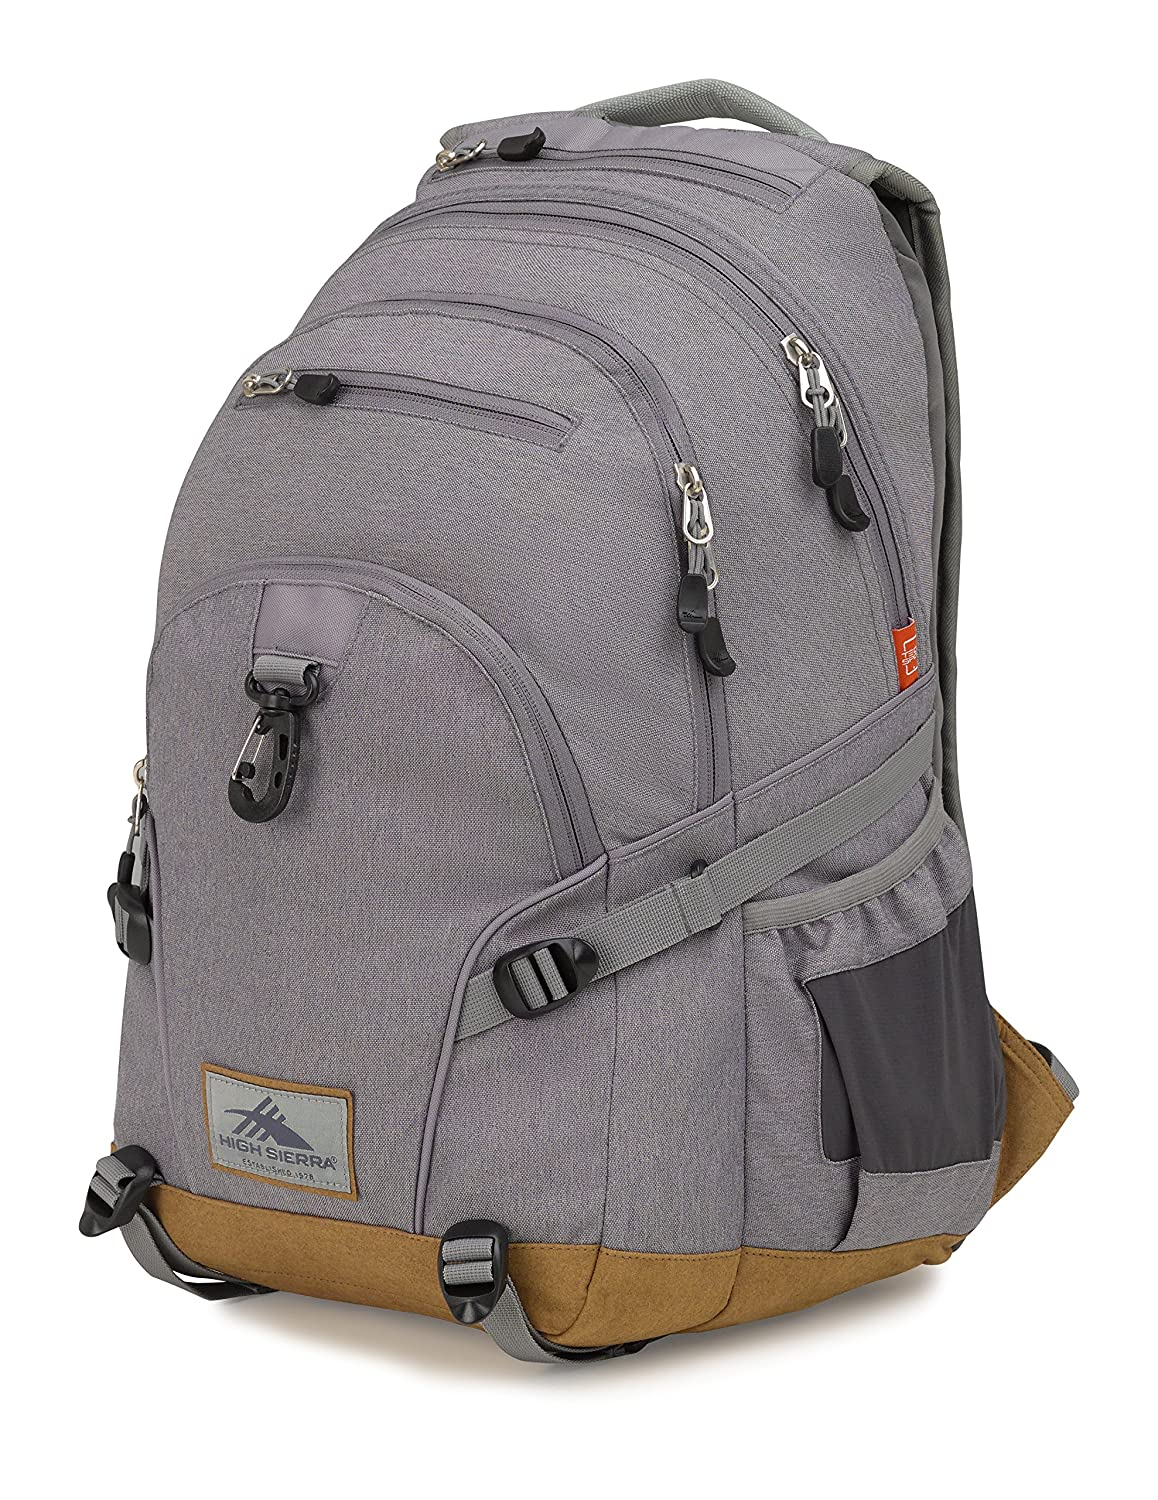 High Sierra Super Loop Backpack